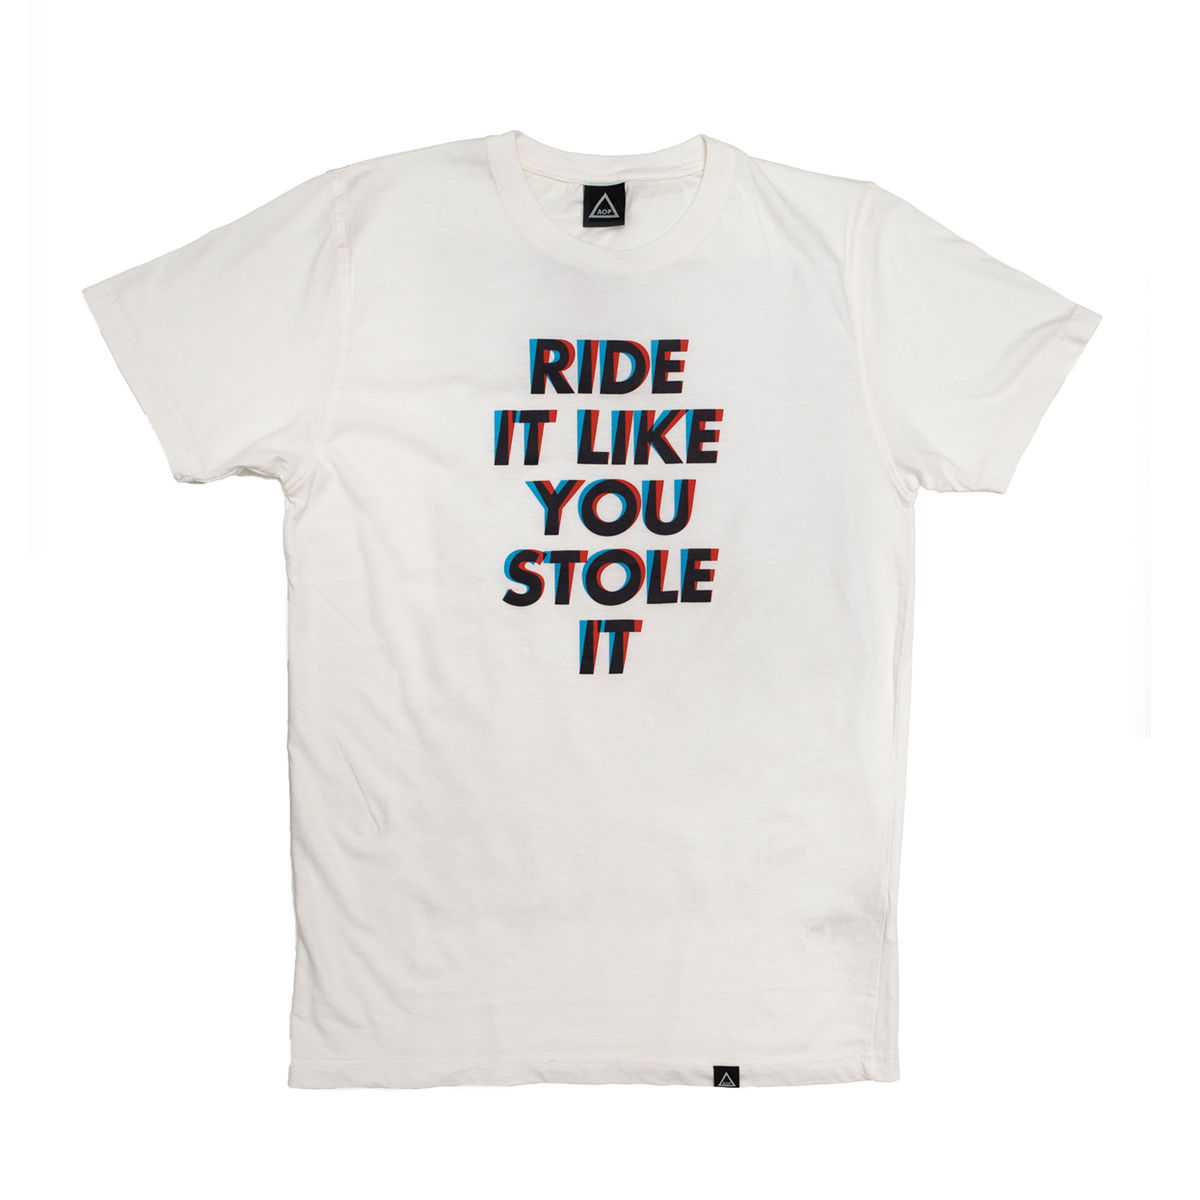 AOP Ride It Like You Stole it 100% Organic T-shirt - product image